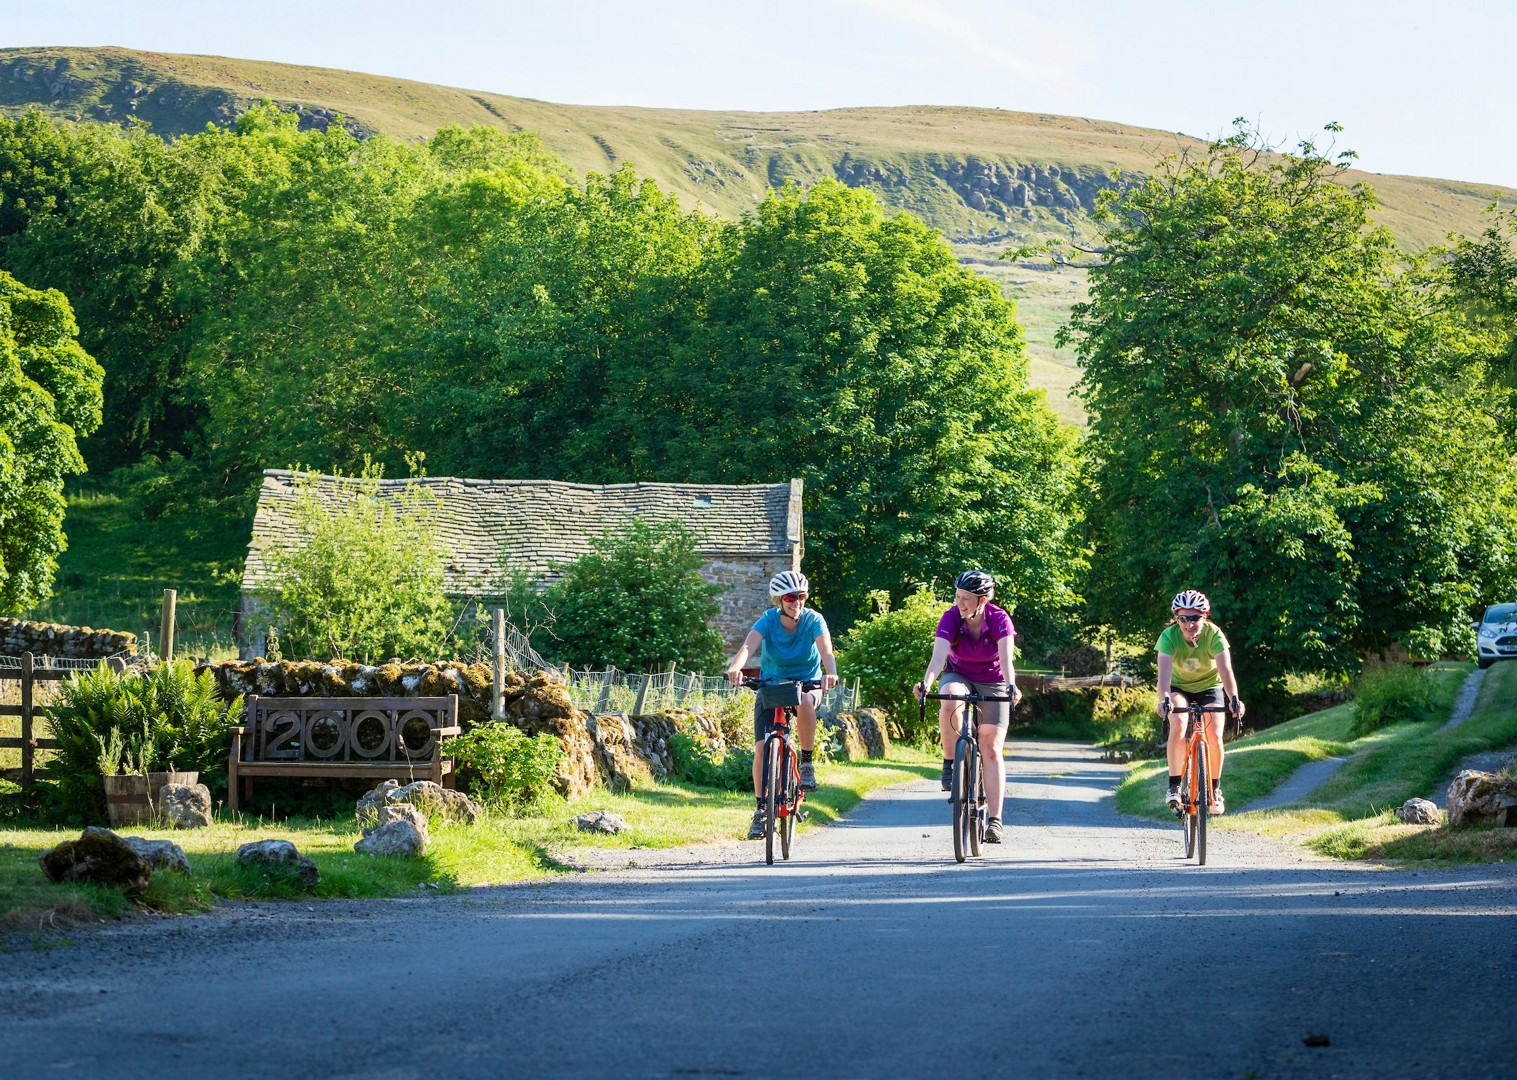 local-villages-of-yorkshire-moors-leisure-cycling.jpg - UK - Way of the Roses - Supported Leisure Cycling Holiday - Leisure Cycling